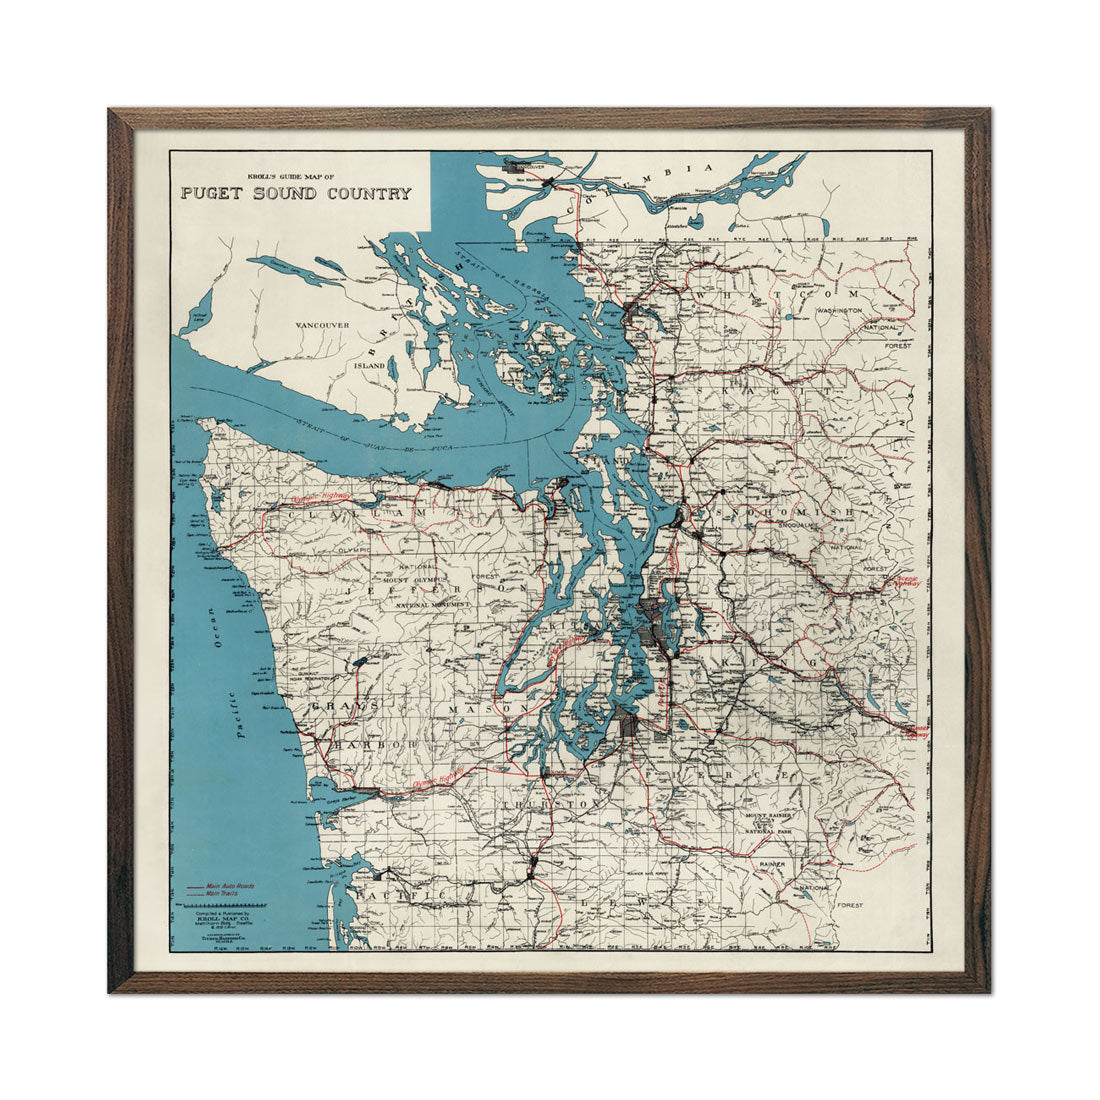 Vintage Puget Sound Map - Country Map 1919